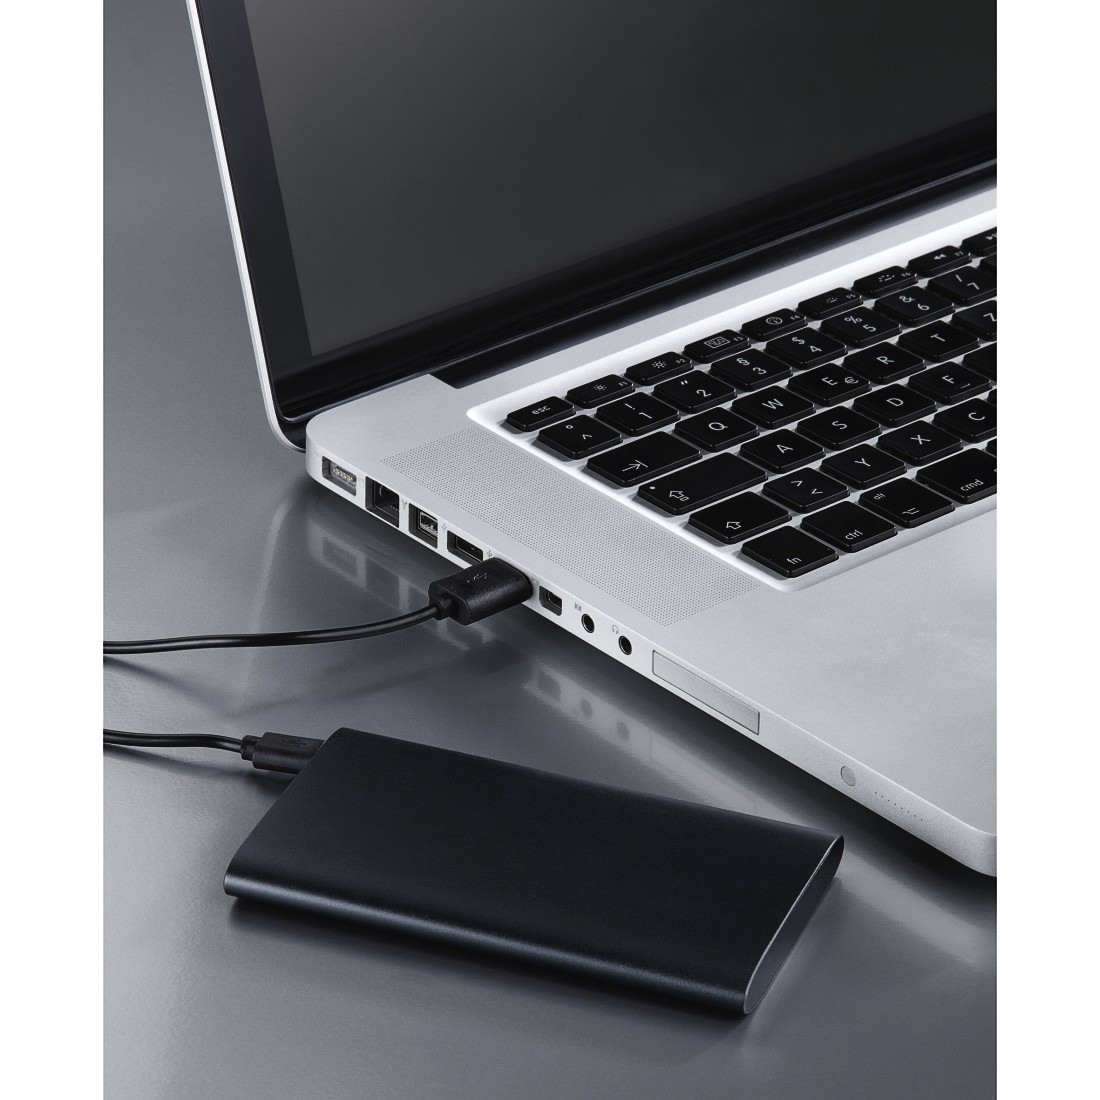 awx2 High-Res Appliance 2 - Hama, Premium Alu Power Pack, 5000 mAh, anthracite